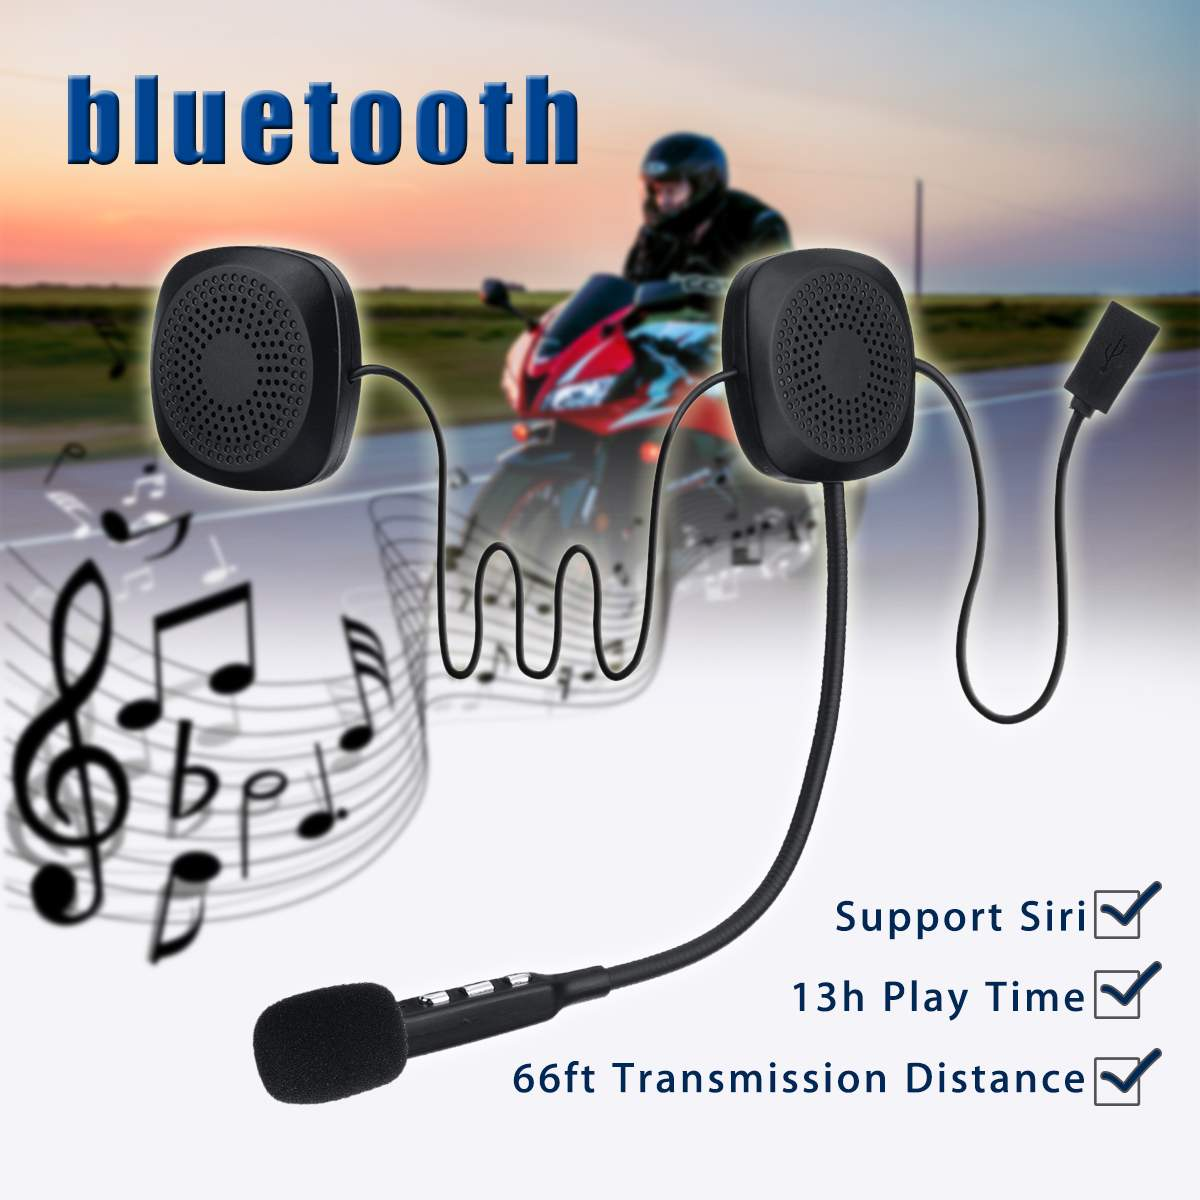 50M Waterproof Moto bluetooth Wireless Anti-interference Helmet Headset Hands Free bluetooth V4.2 Intercom for Motorcycle